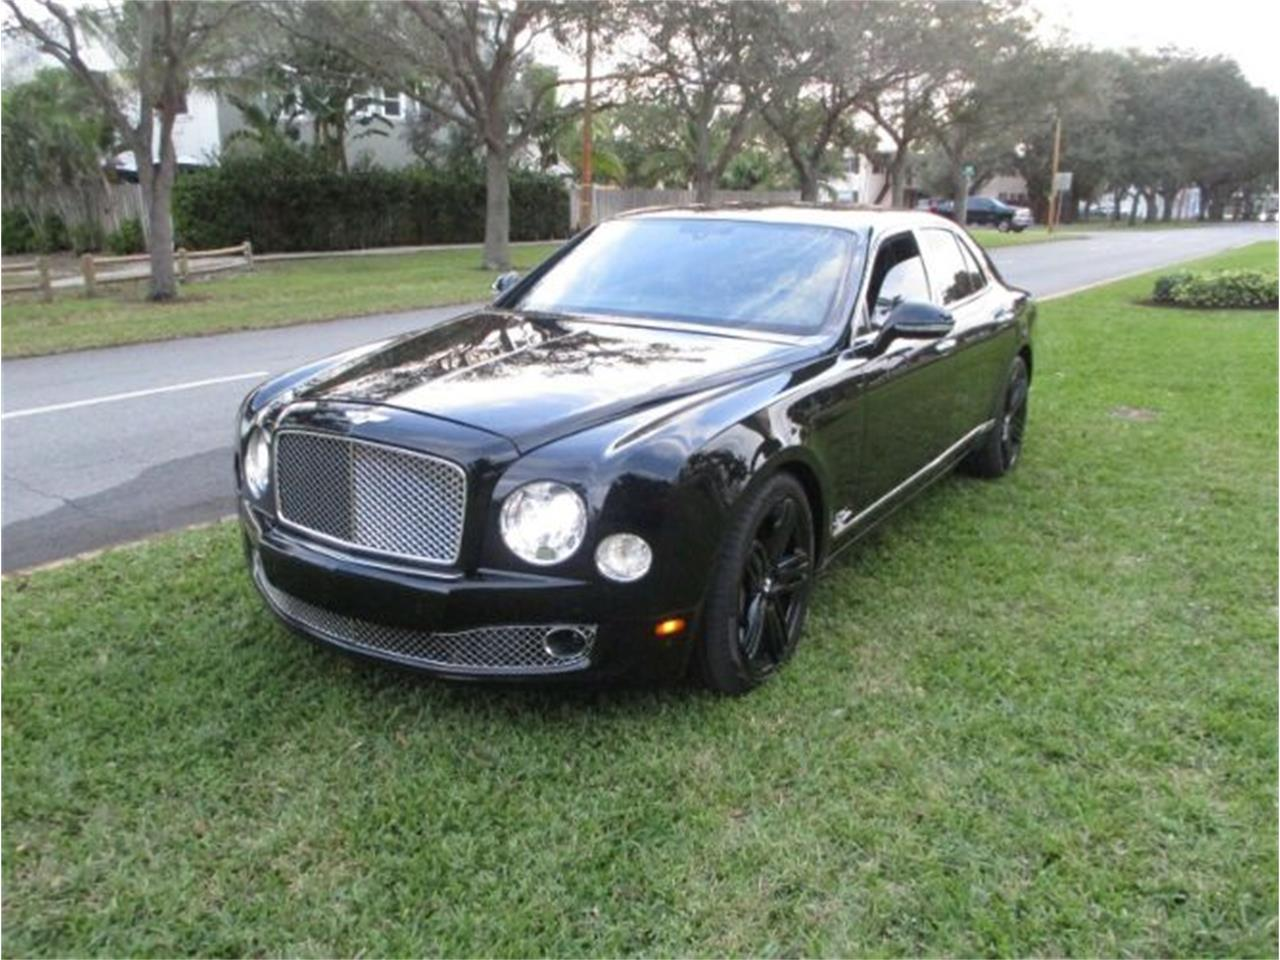 2011 Bentley Mulsanne S for sale in Cadillac, MI – photo 3